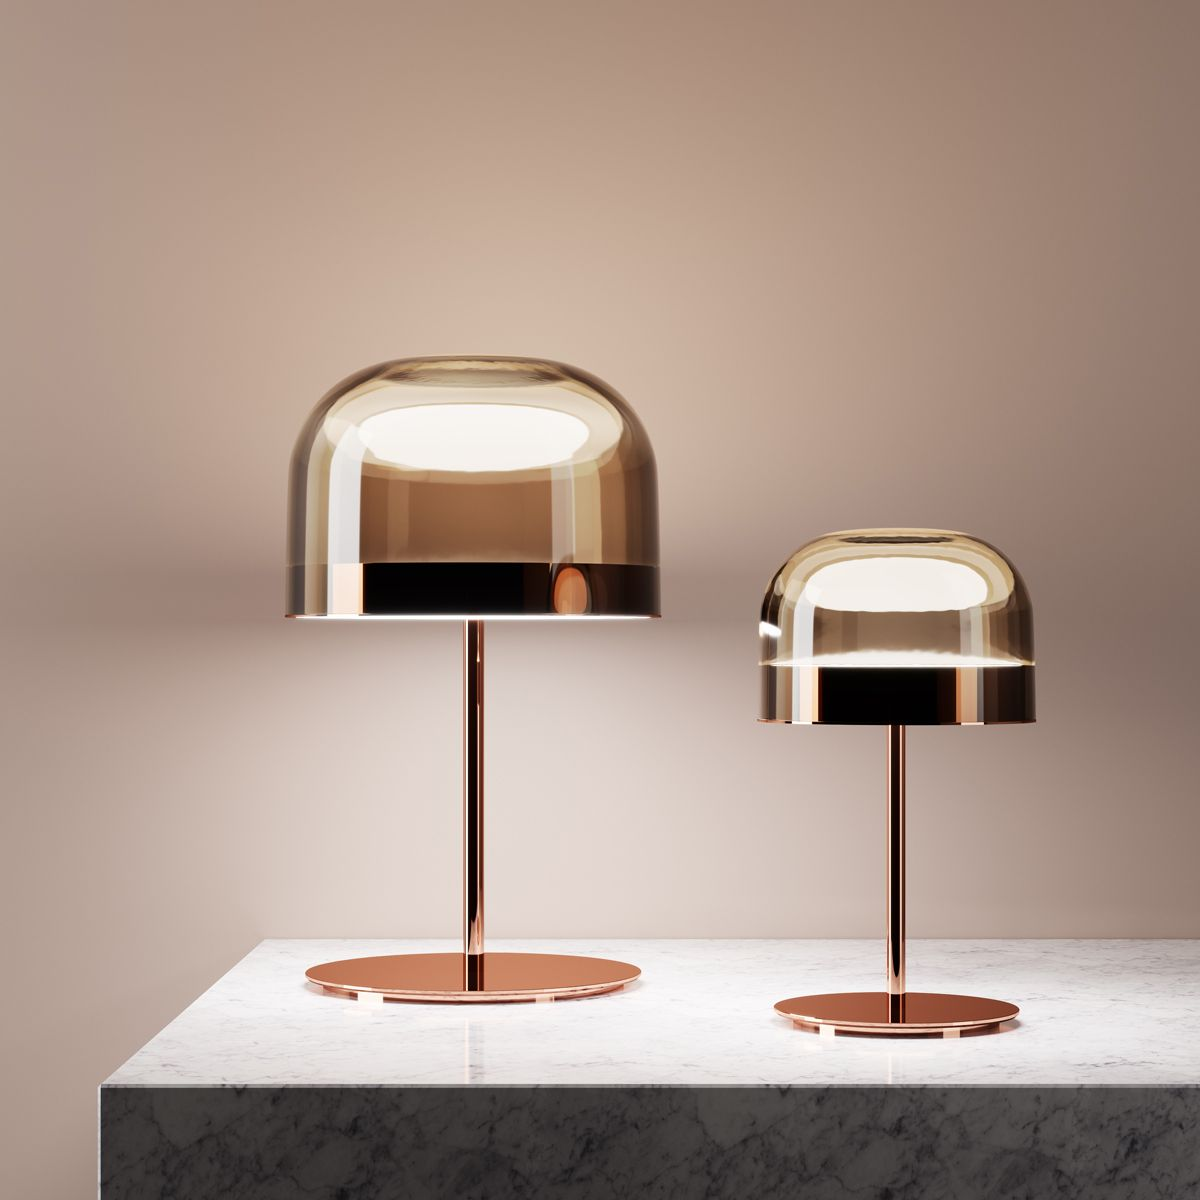 Equatore | Lampes de table, Luminaire, Lampe de table design